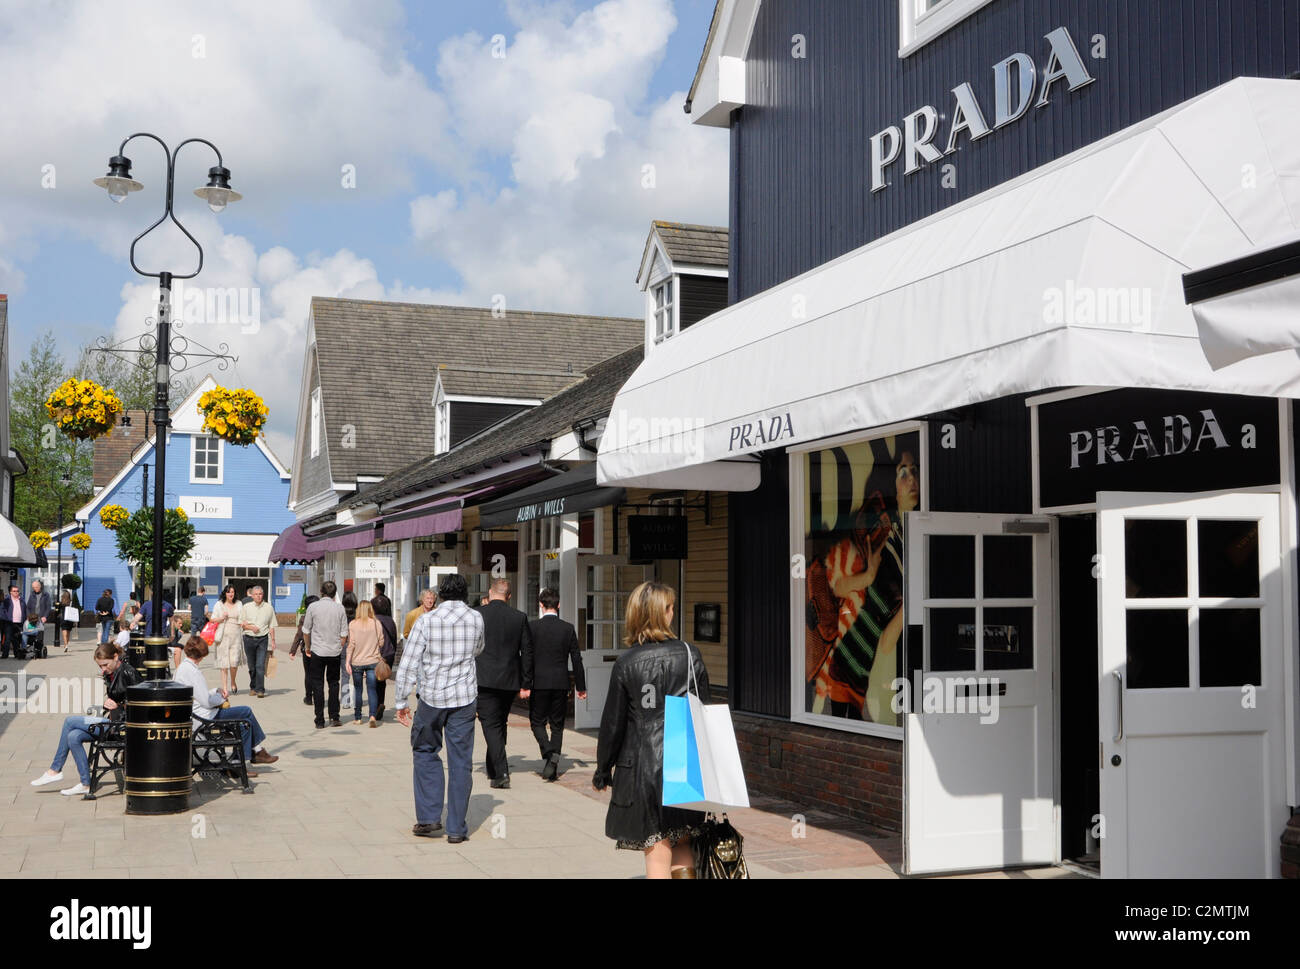 outlet stores stock photos u0026 outlet stores stock images alamy